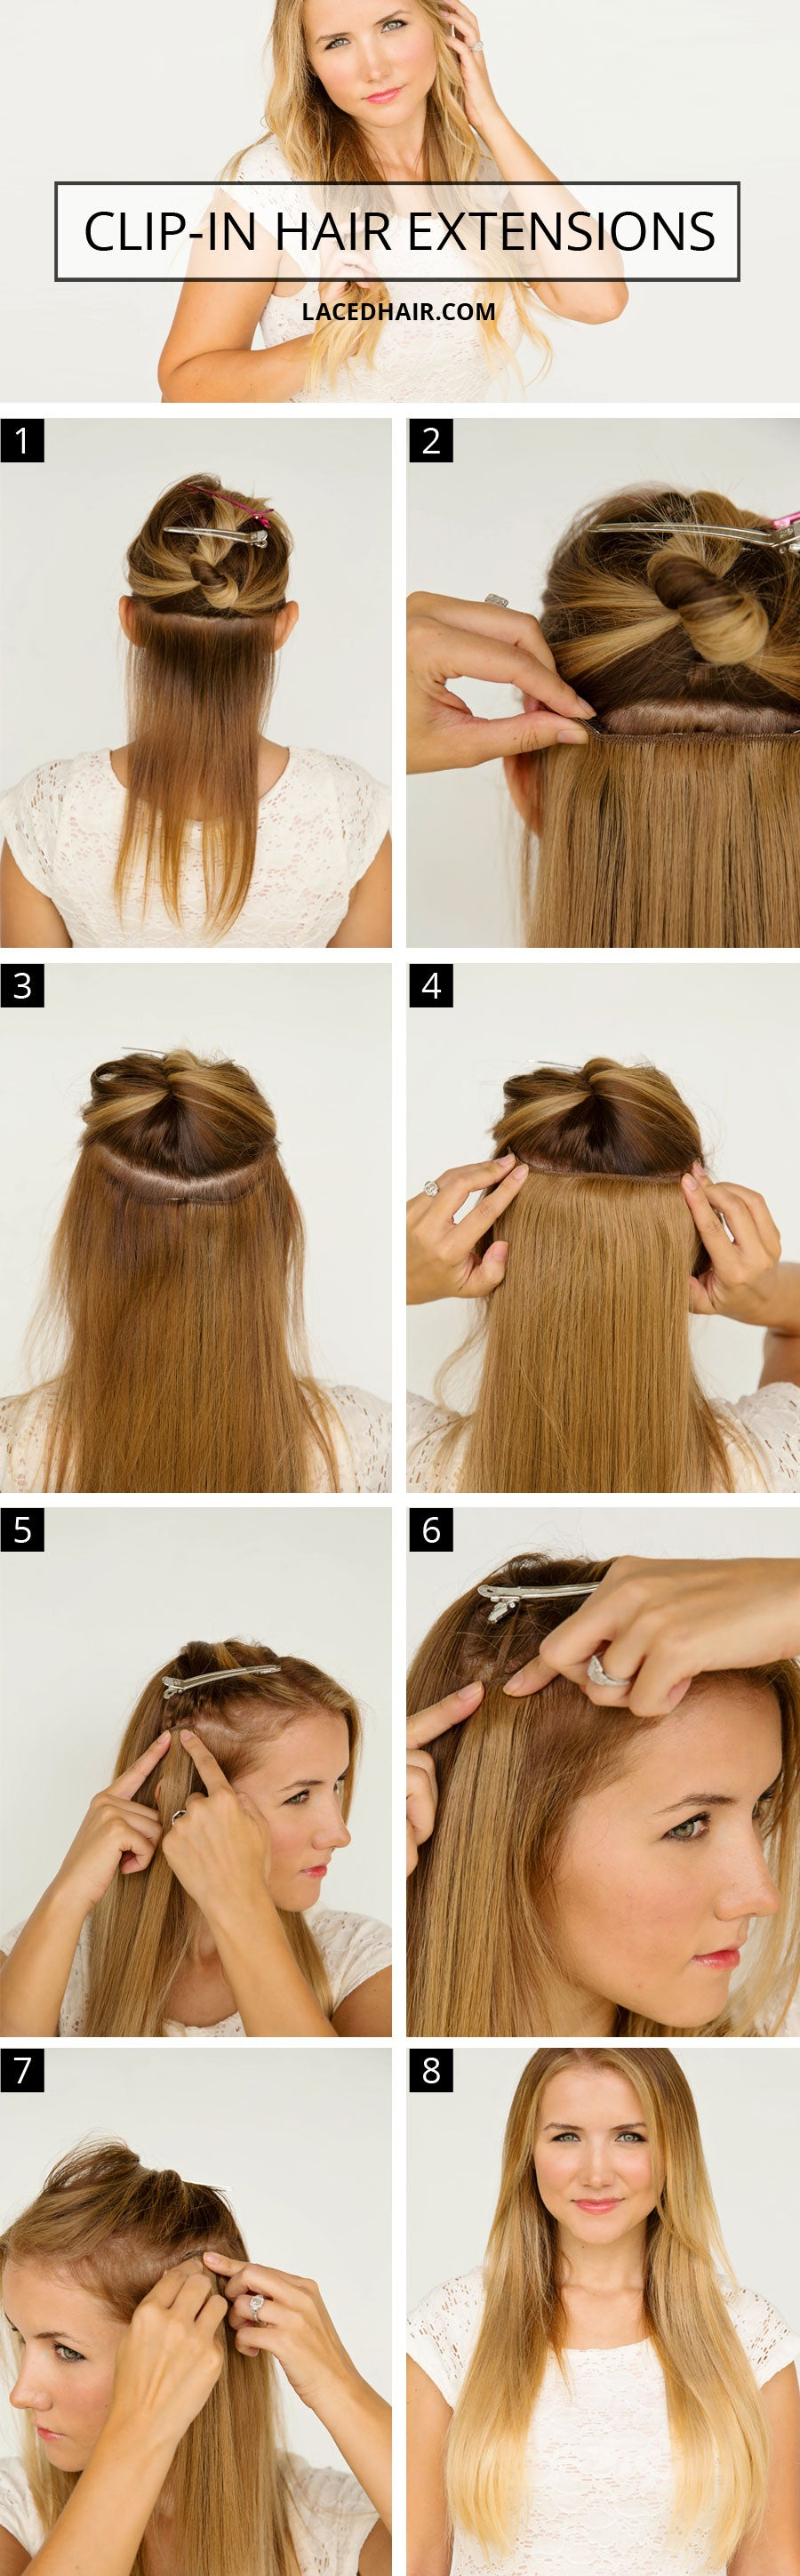 How To Wear Clip In Hair Extensions Laced Hair